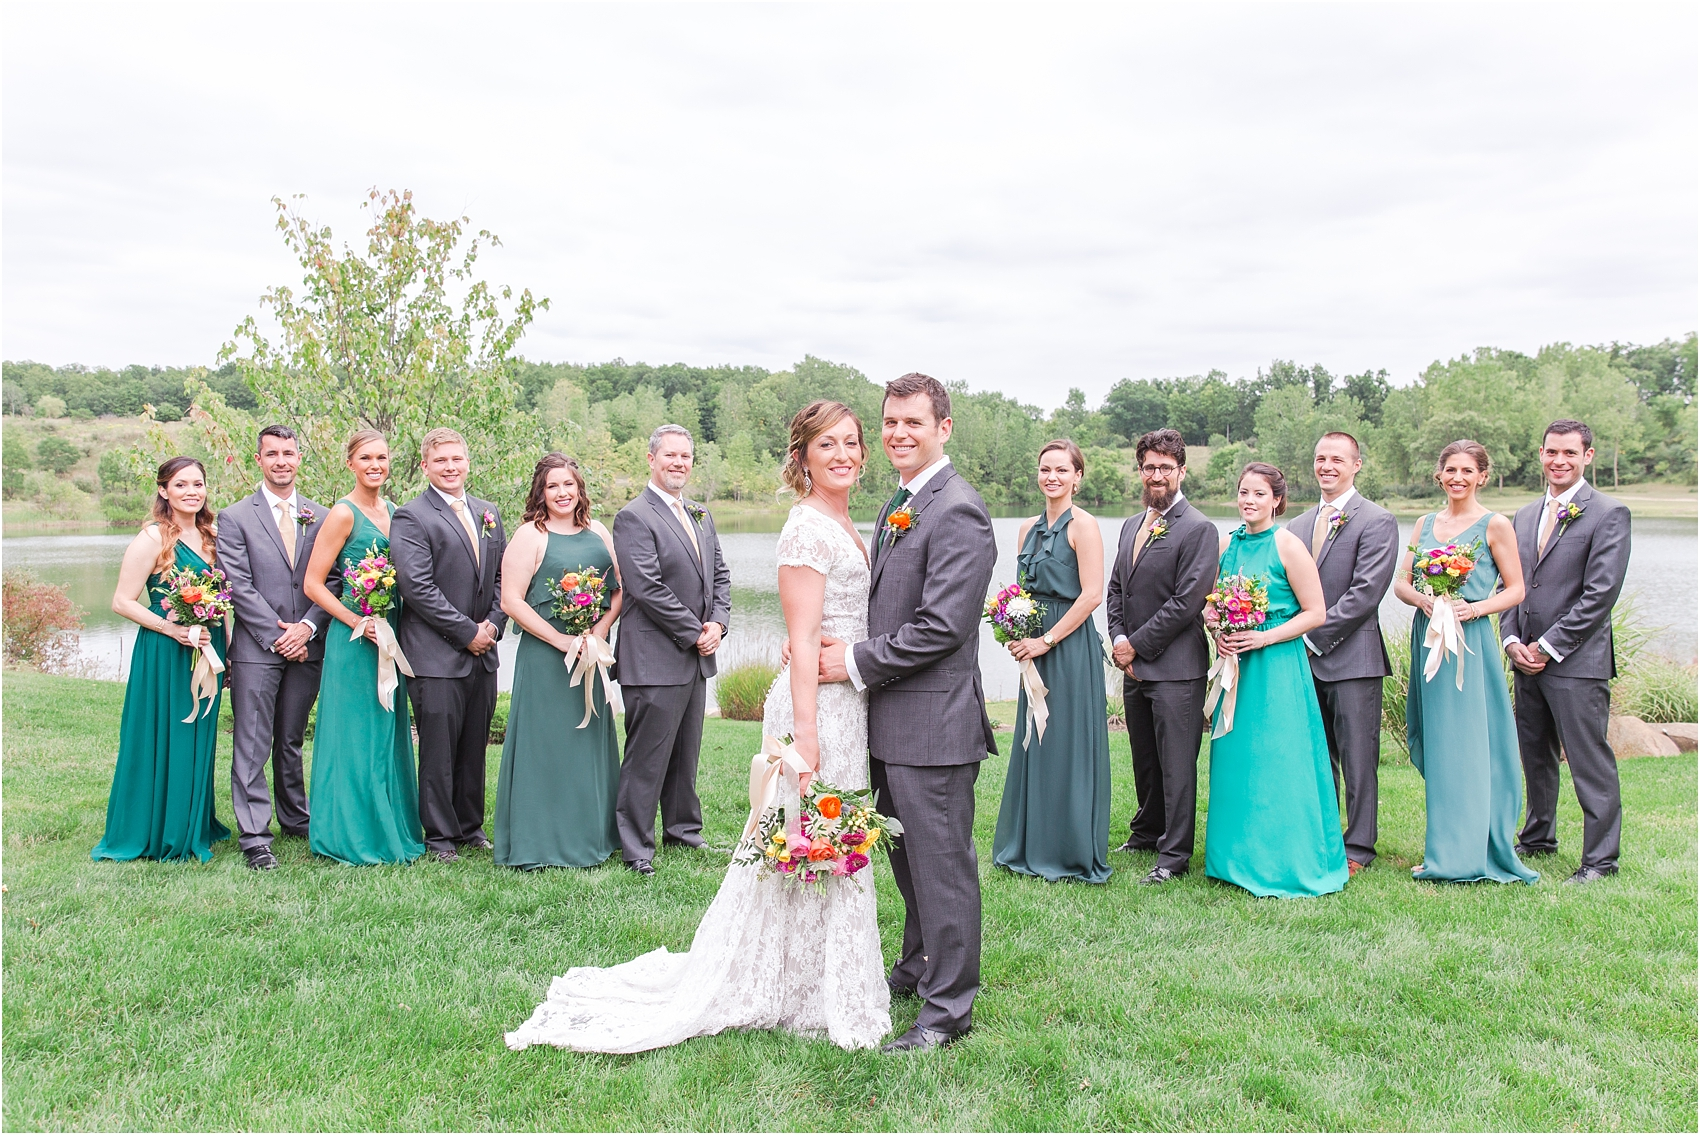 romantic-intimate-backyard-wedding-photos-at-private-estate-in-ann-arbor-mi-by-courtney-carolyn-photography_0034.jpg